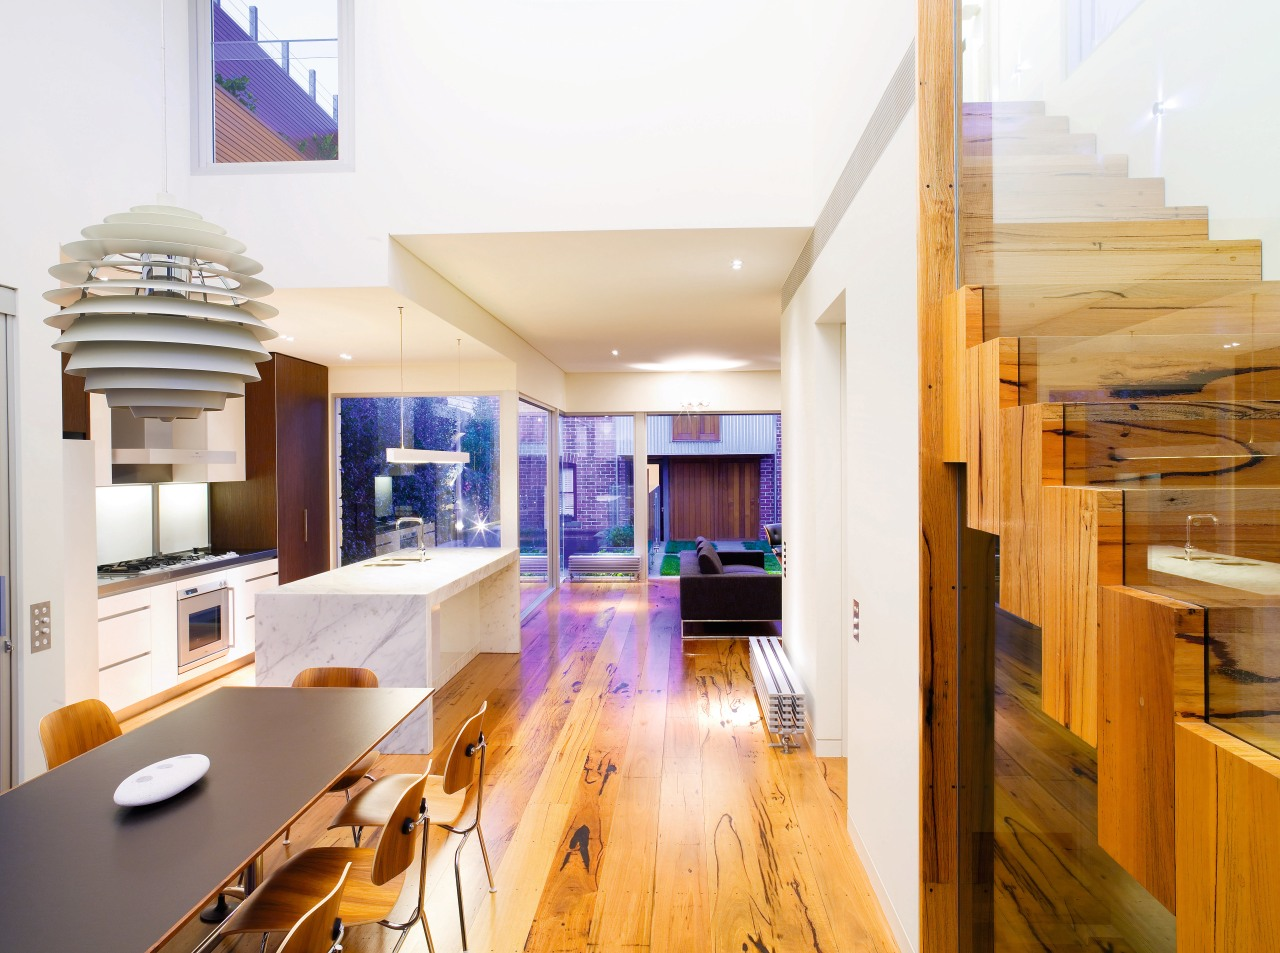 A view of the kitchen and dining areas, apartment, architecture, ceiling, house, interior design, living room, real estate, white